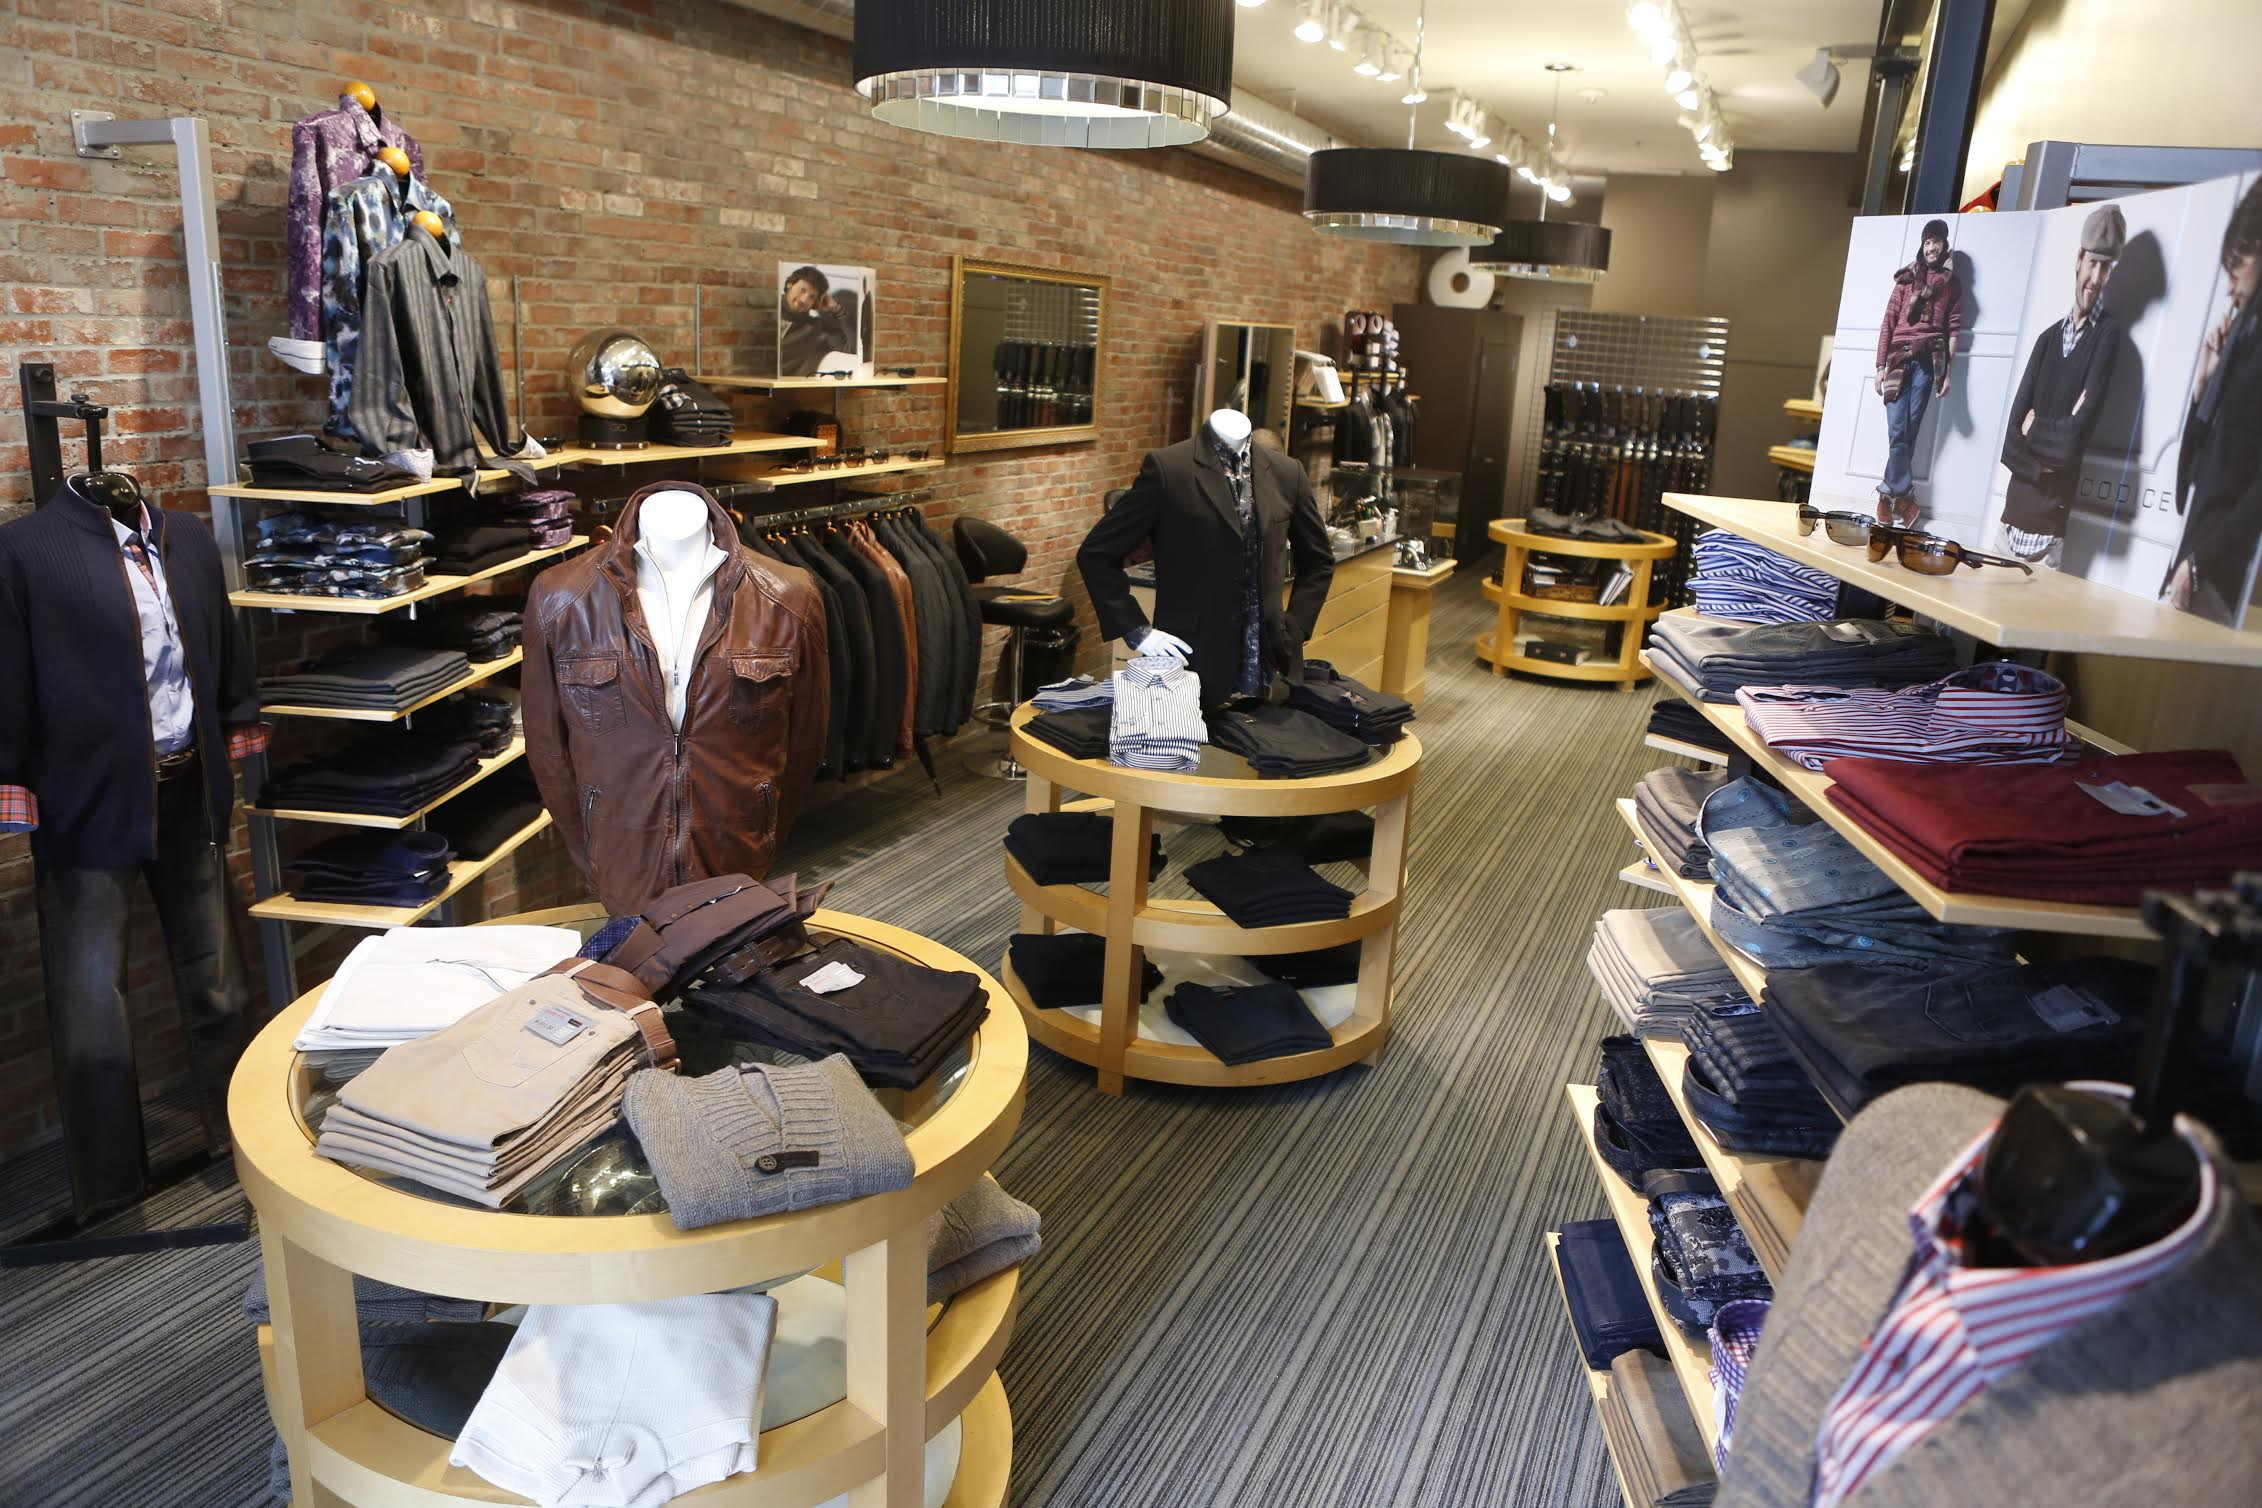 d4496d78d1a8 Shop Local: 19 Independent Denver Men's Clothing Shops You Need to ...